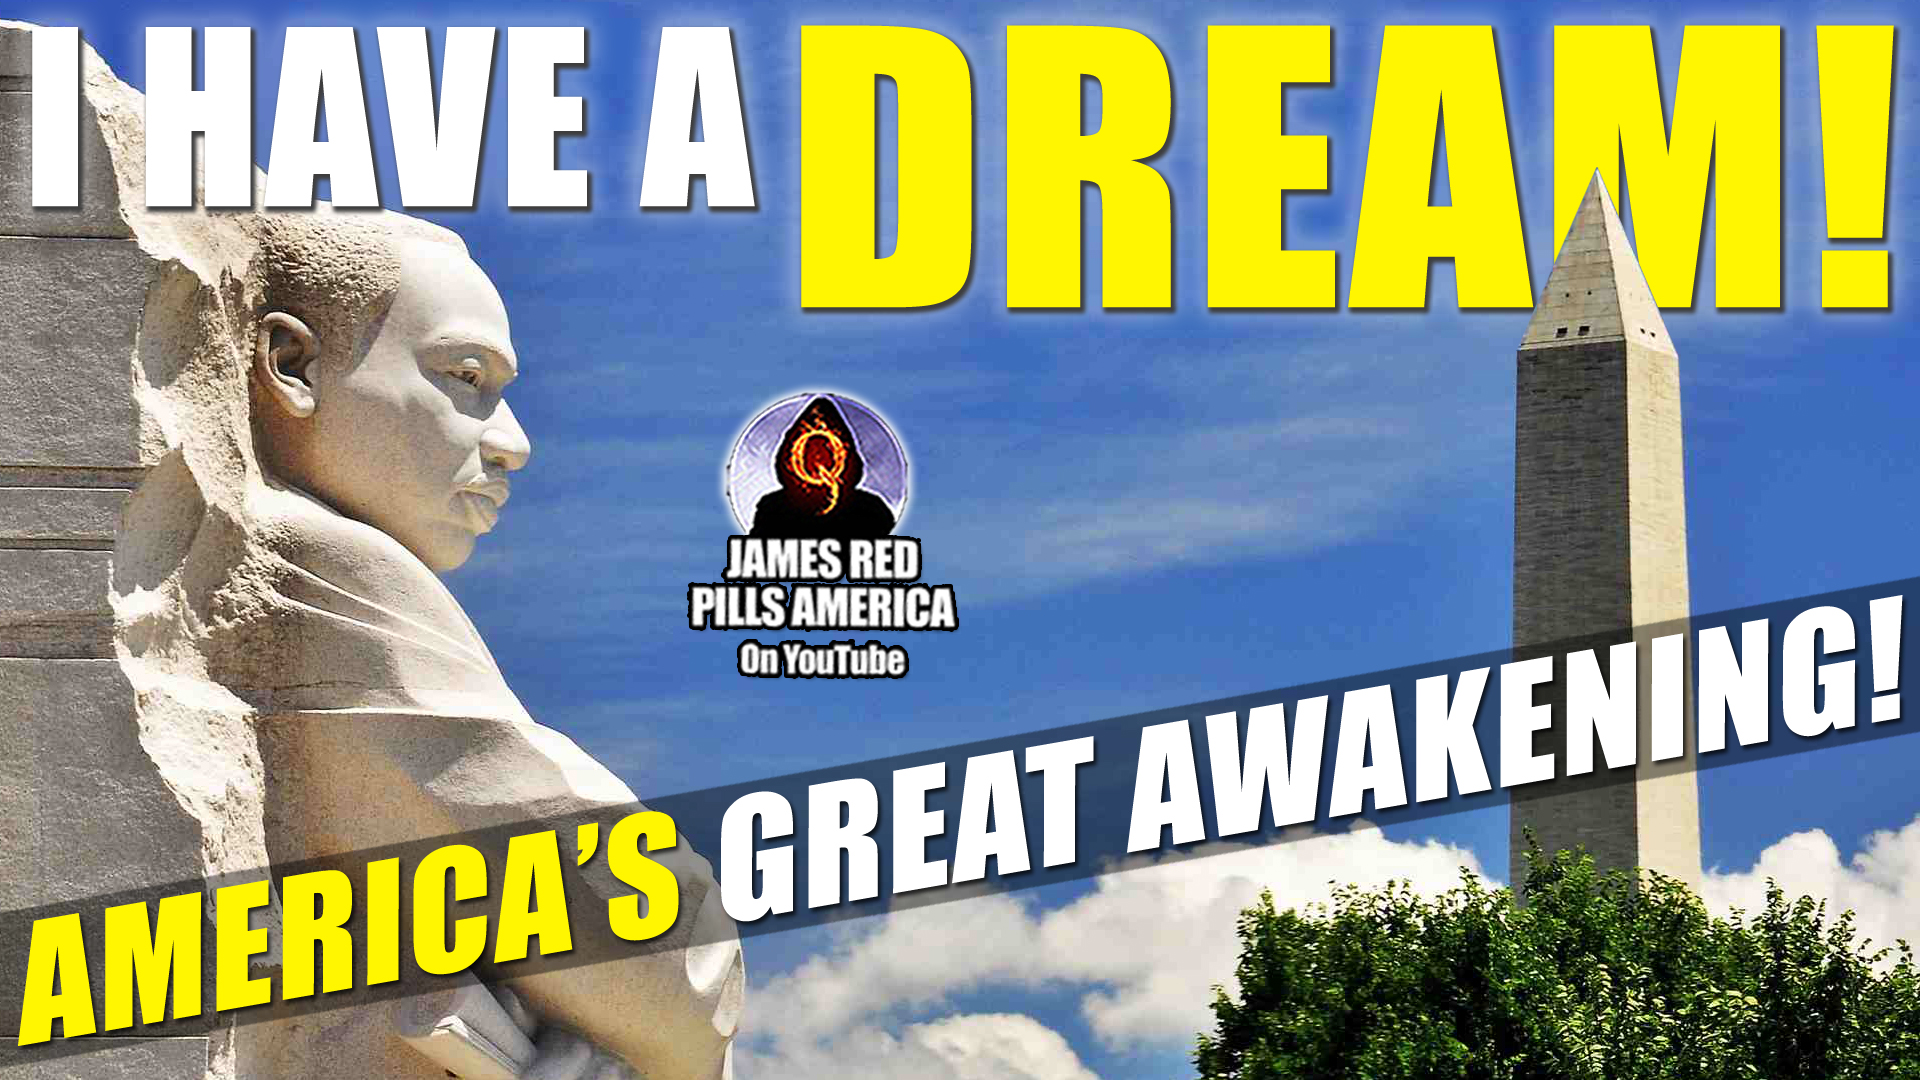 Martin Luther King Jr Was Part of the Great American Awakening! I Have a Dream! Awesome Video!